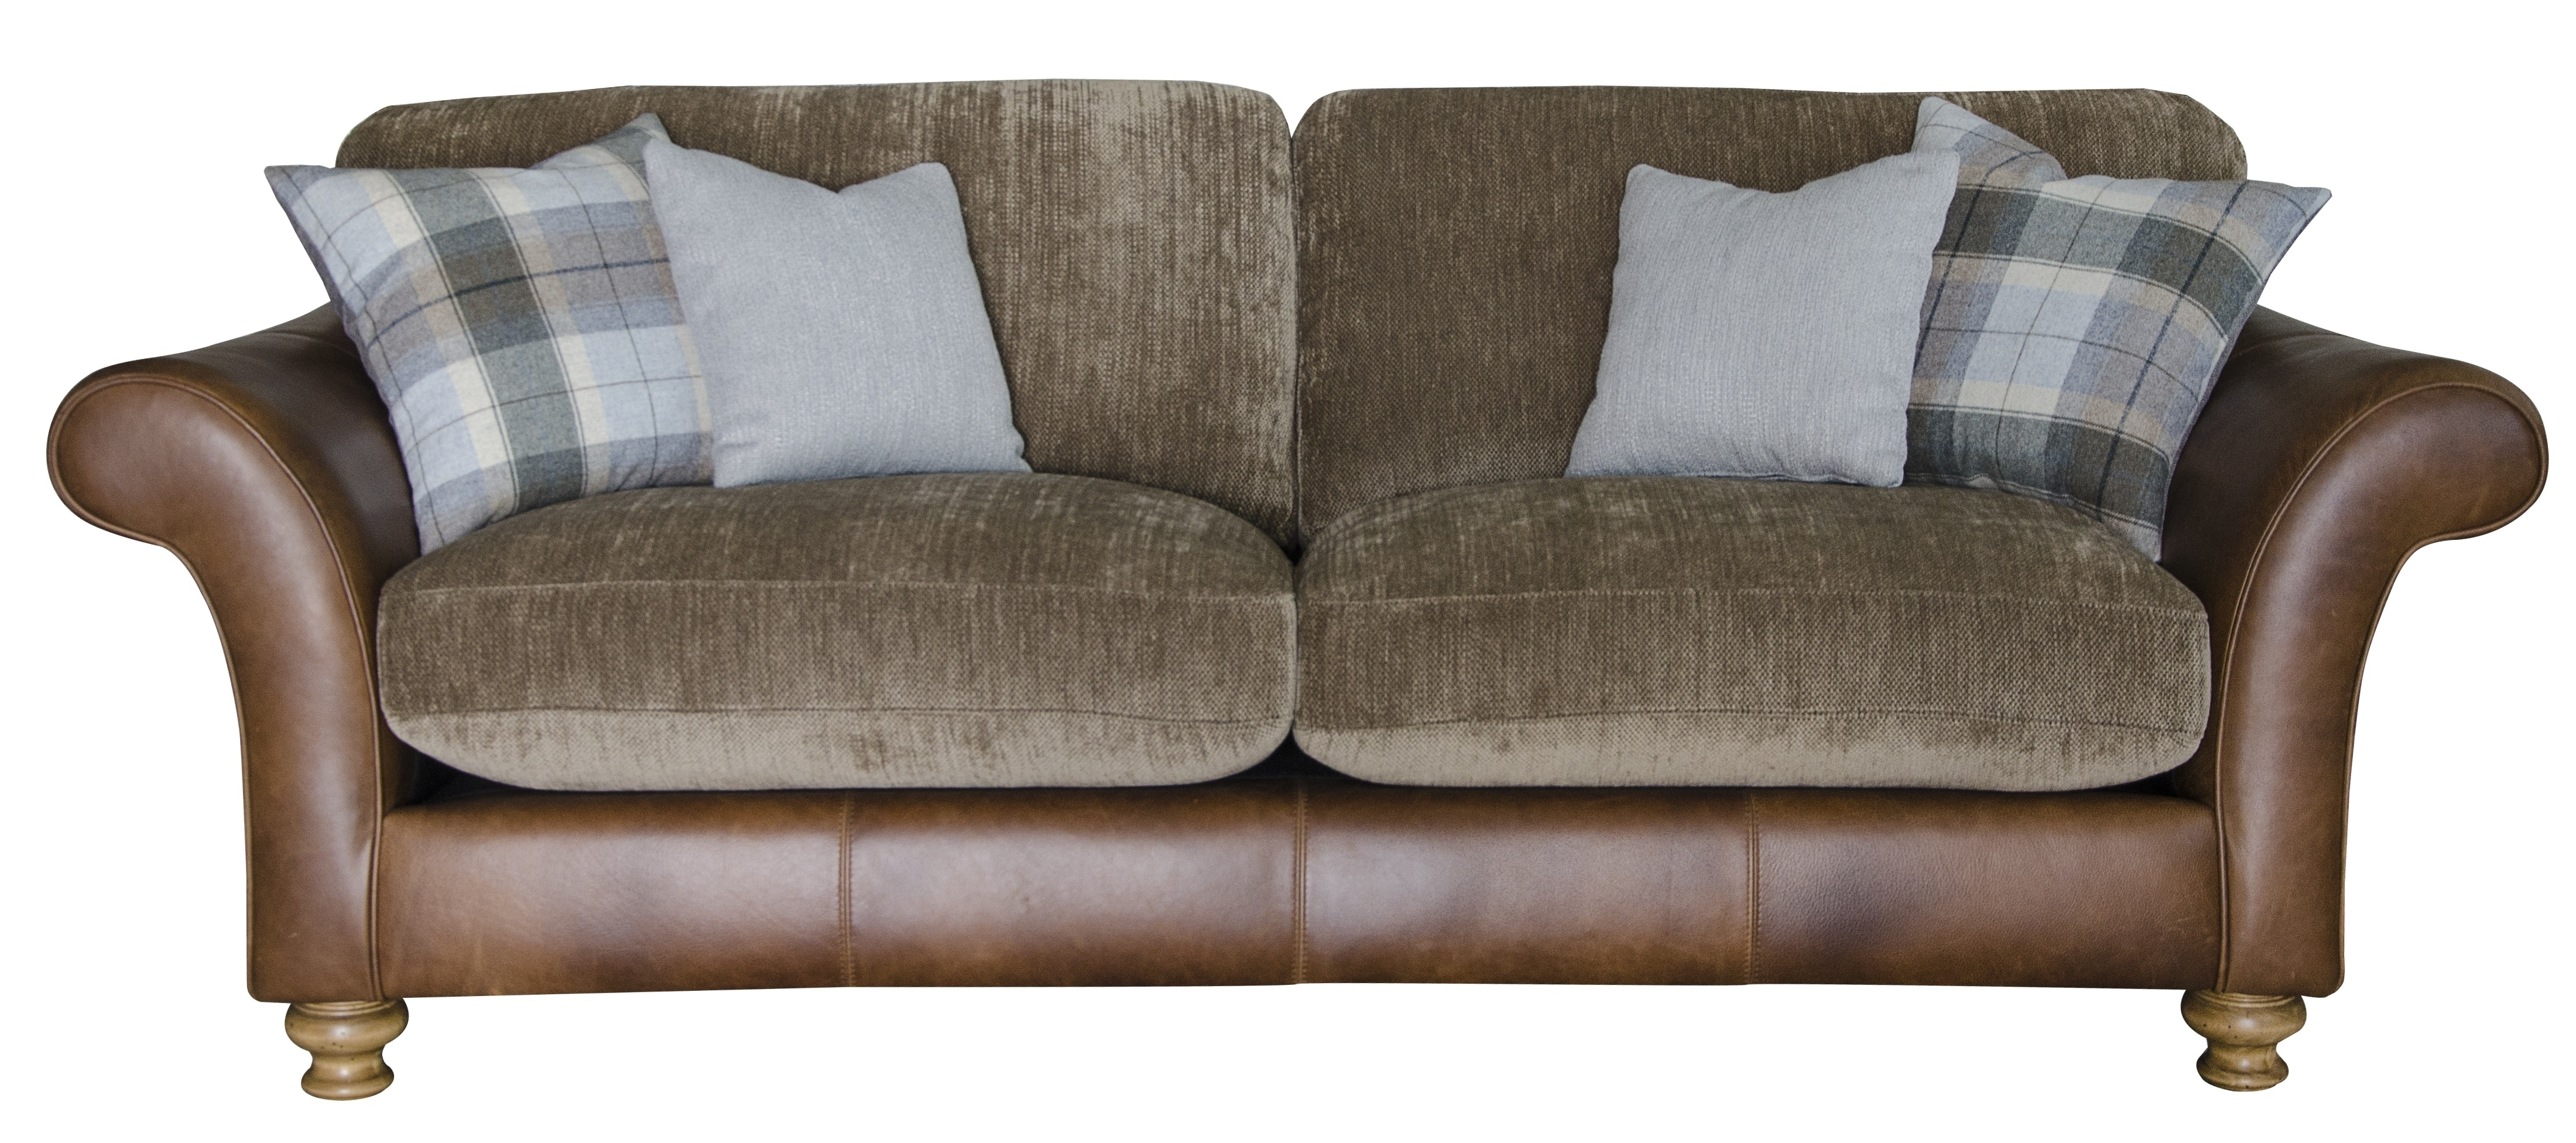 Leather And Fabric Combination Sofas • Leather Sofa Inside Leather And Cloth Sofas (View 5 of 10)